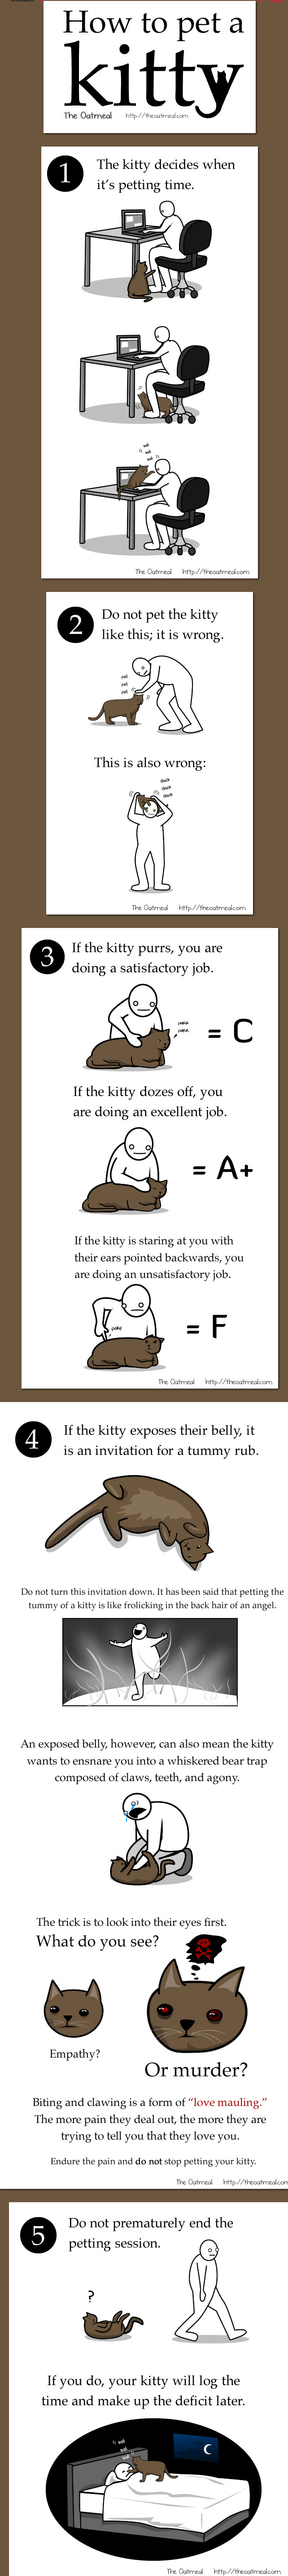 How to pet a kitty by Matthew Inman of the Oatmeal, funny cat comic